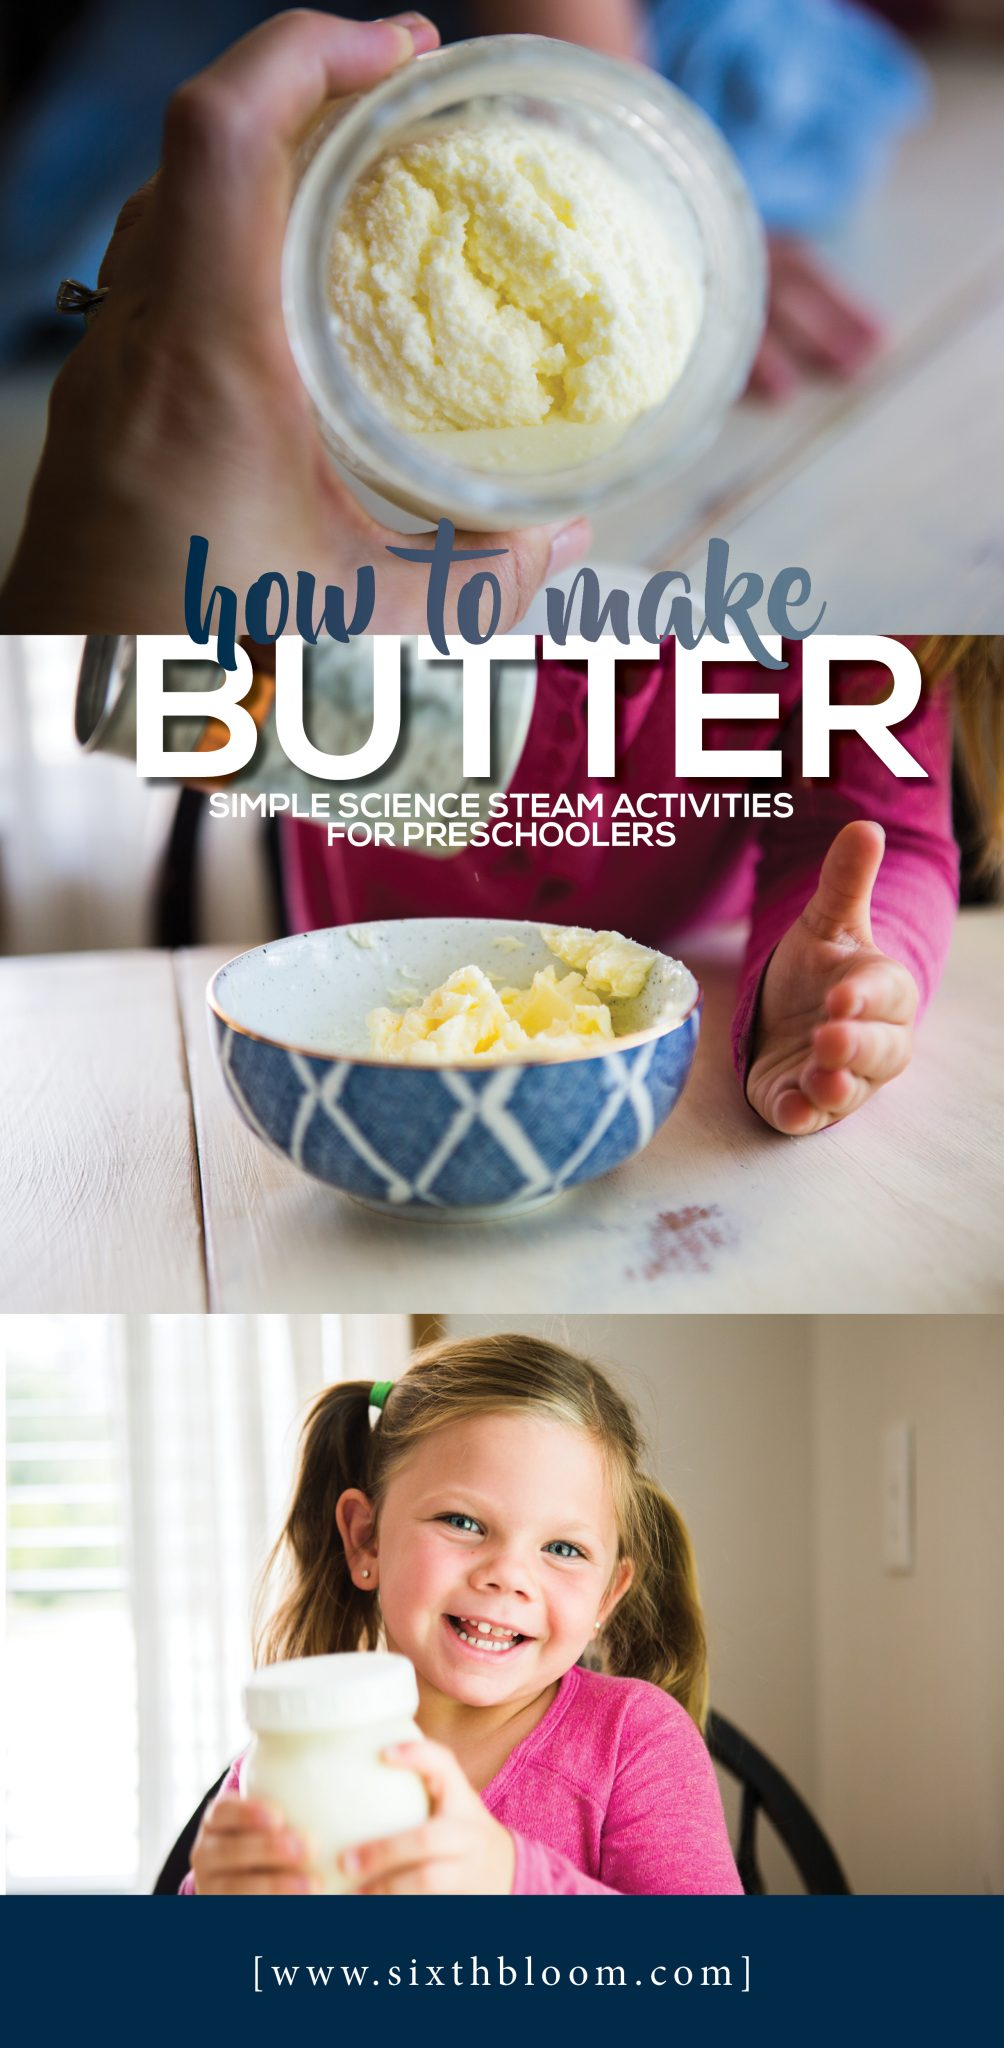 How to Make Butter - Simple Science for Preschoolers